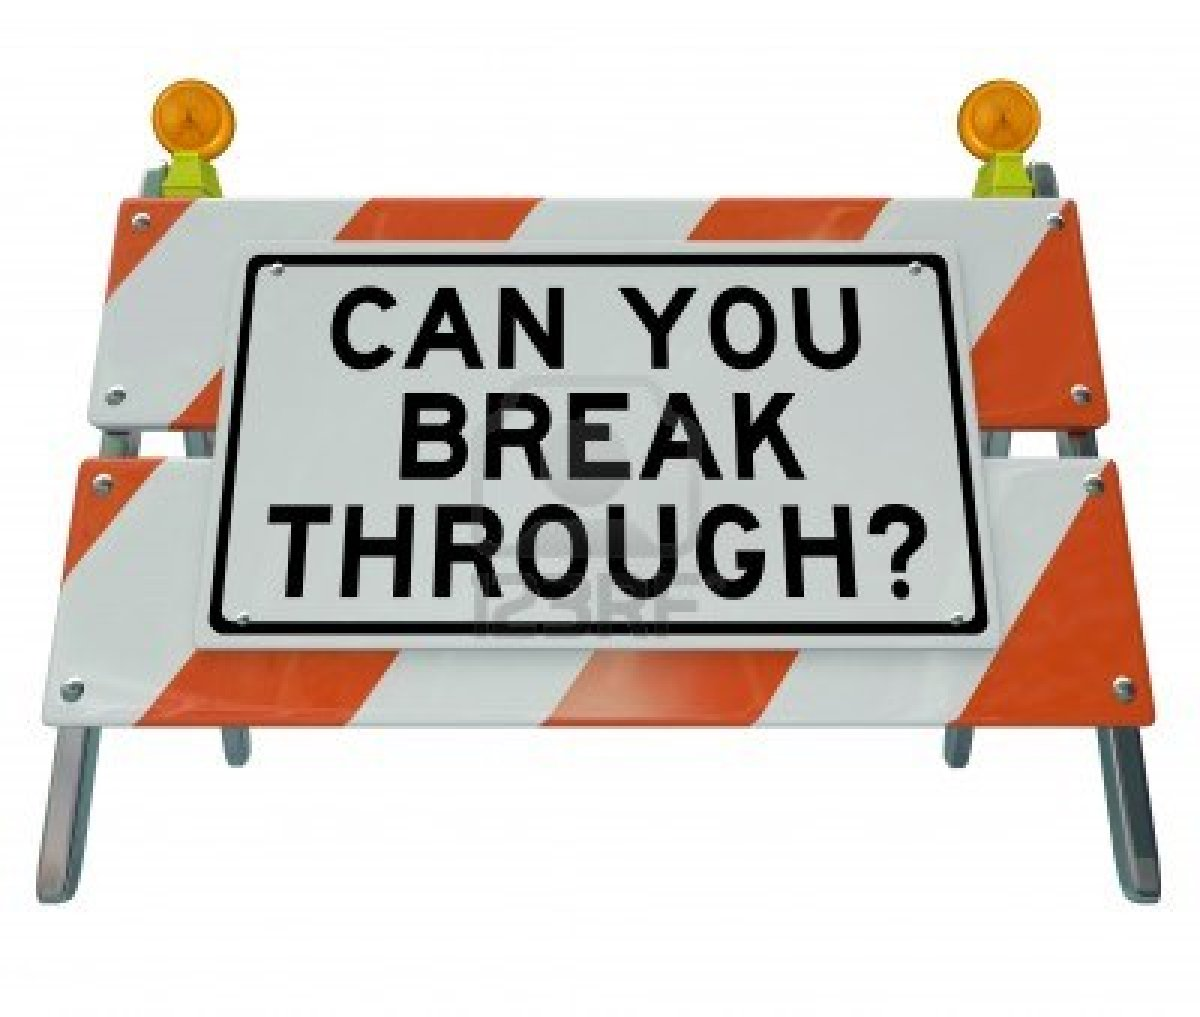 Orange and white striped construction sign with Can You Break Through printed on an attached sign